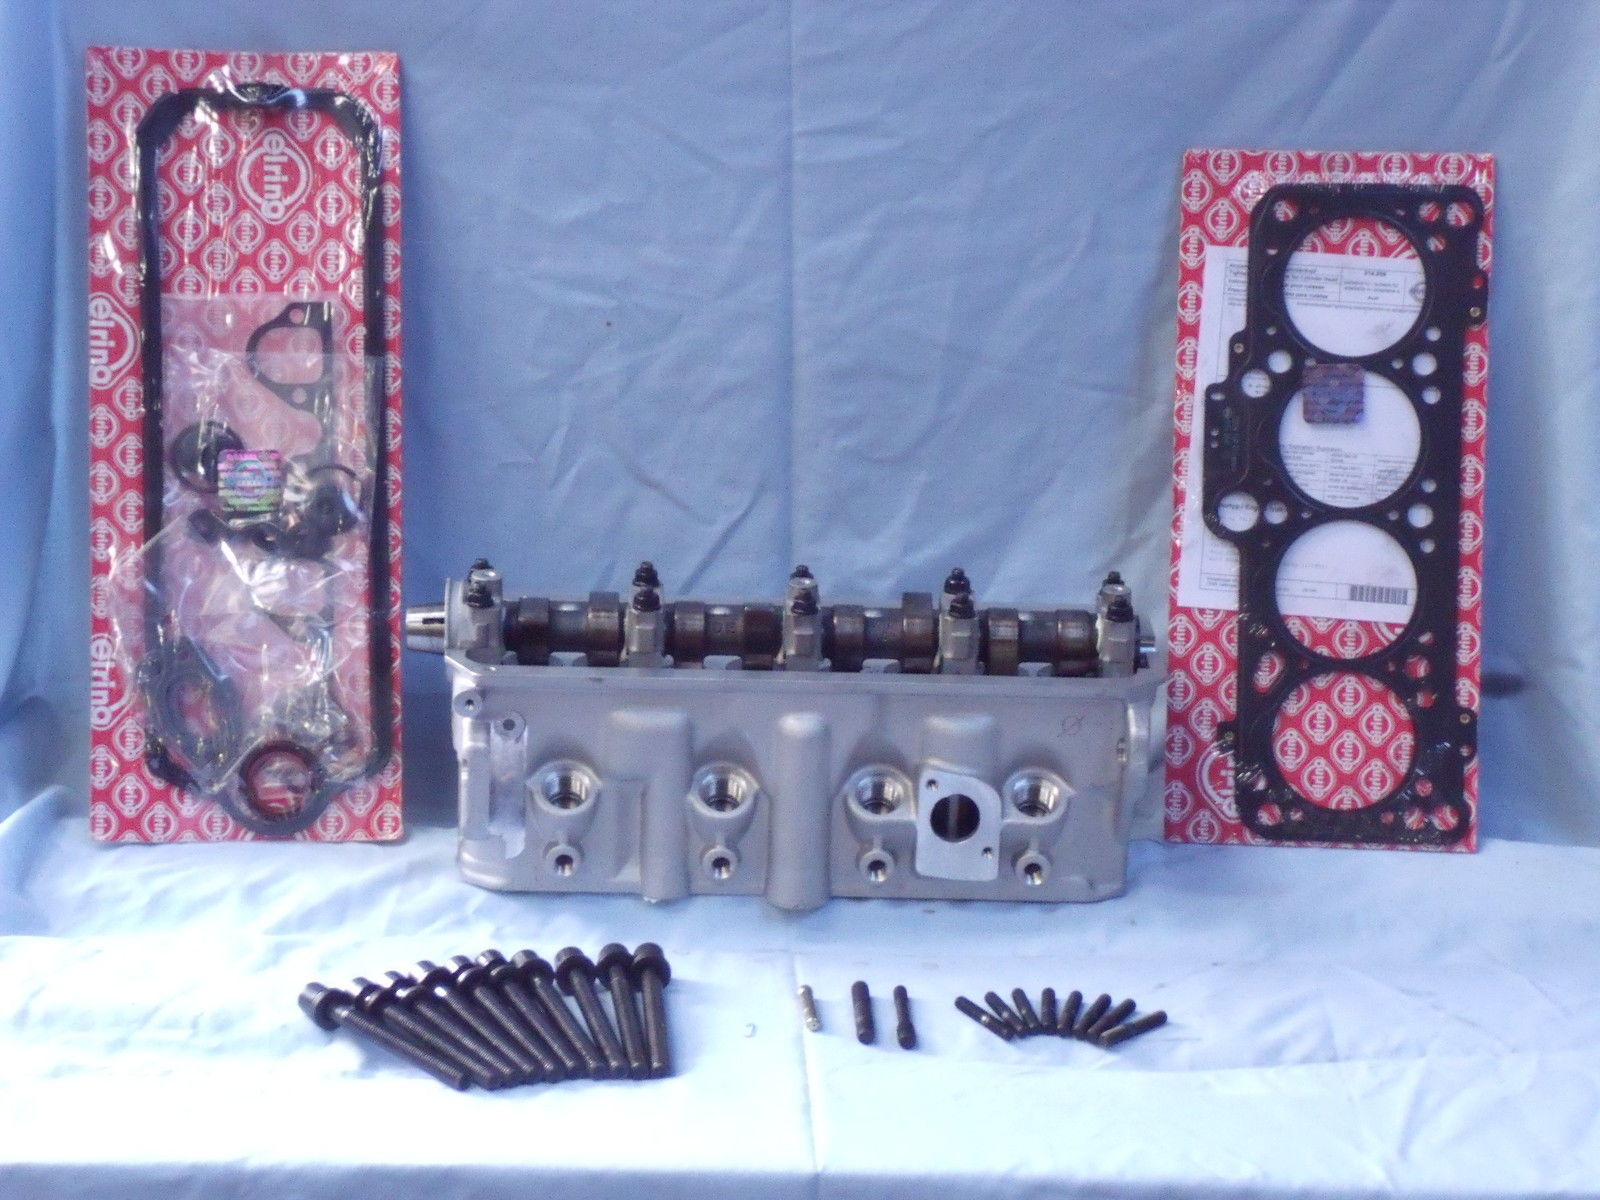 new AMC cylinder heads comes with gaskets and head bolts